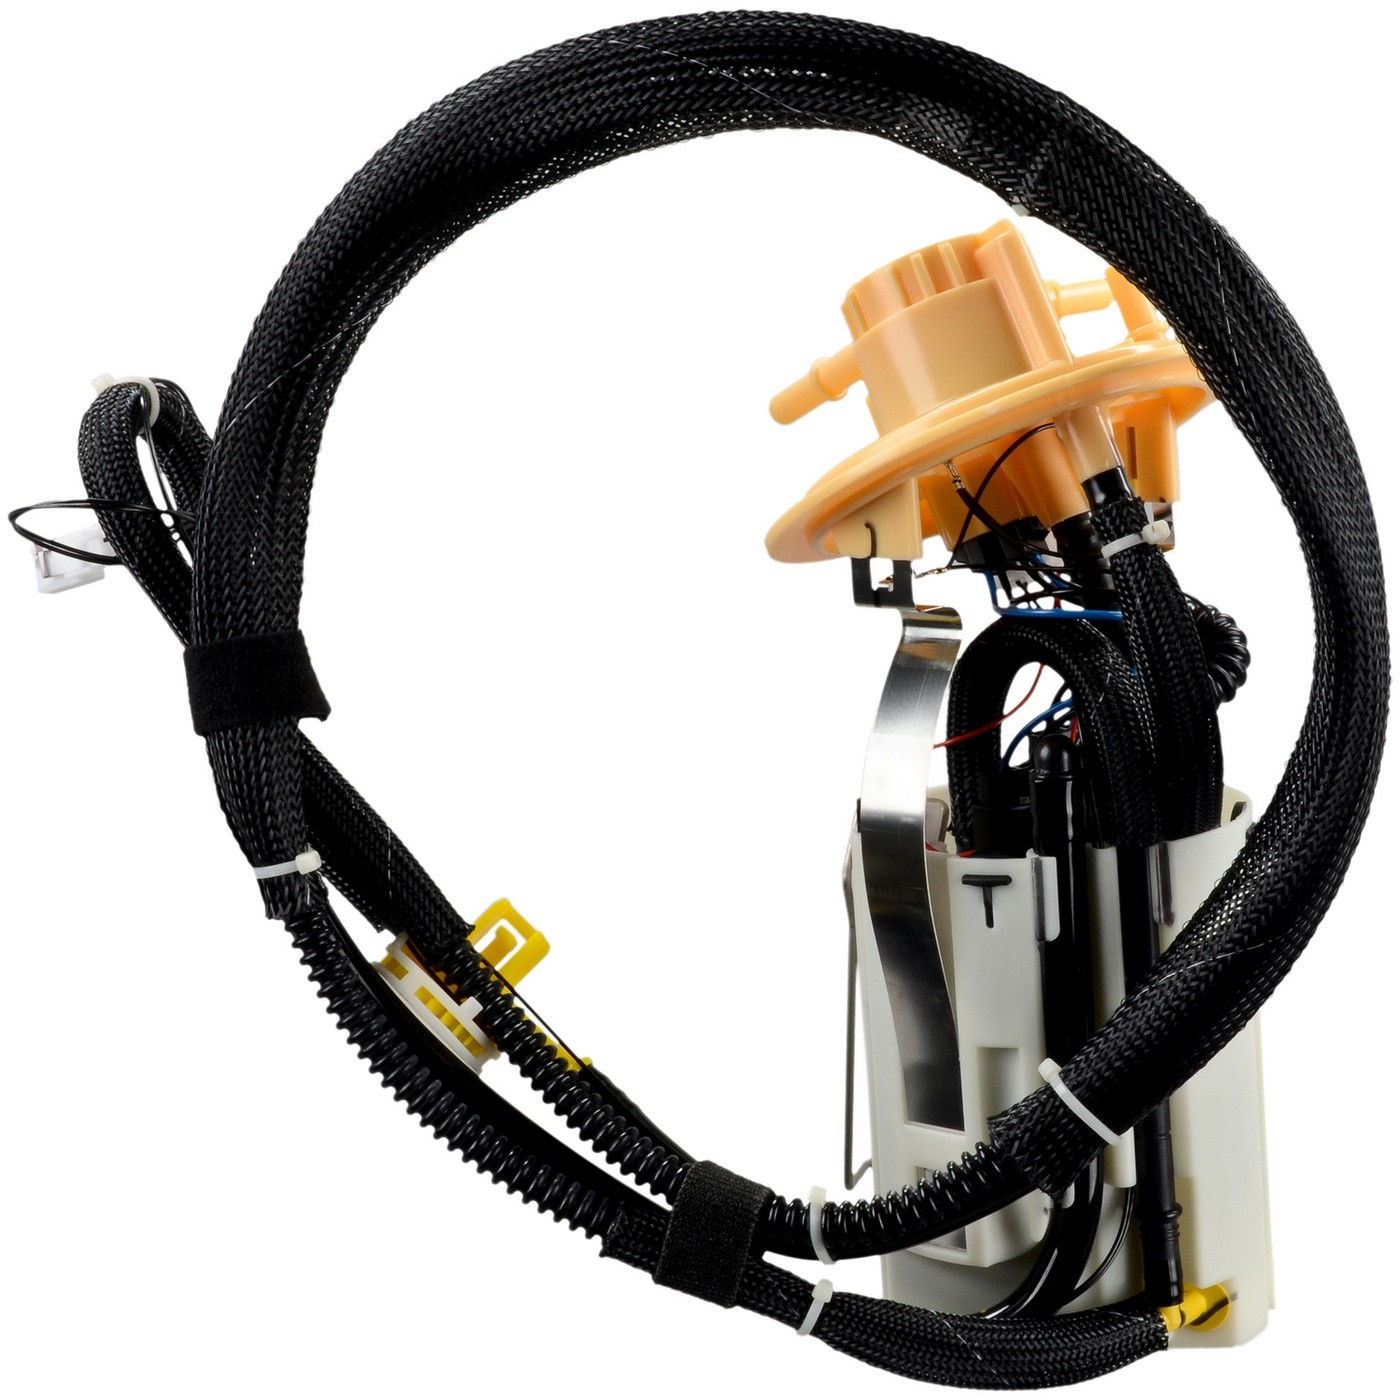 Fuel Pump Assemblies Bosch Auto Parts Volvo V70 Filter Lines Supplied The Industrys First Injection System With A High Pressure Electric In 1967 Since Then Has Stood At Forefront Of